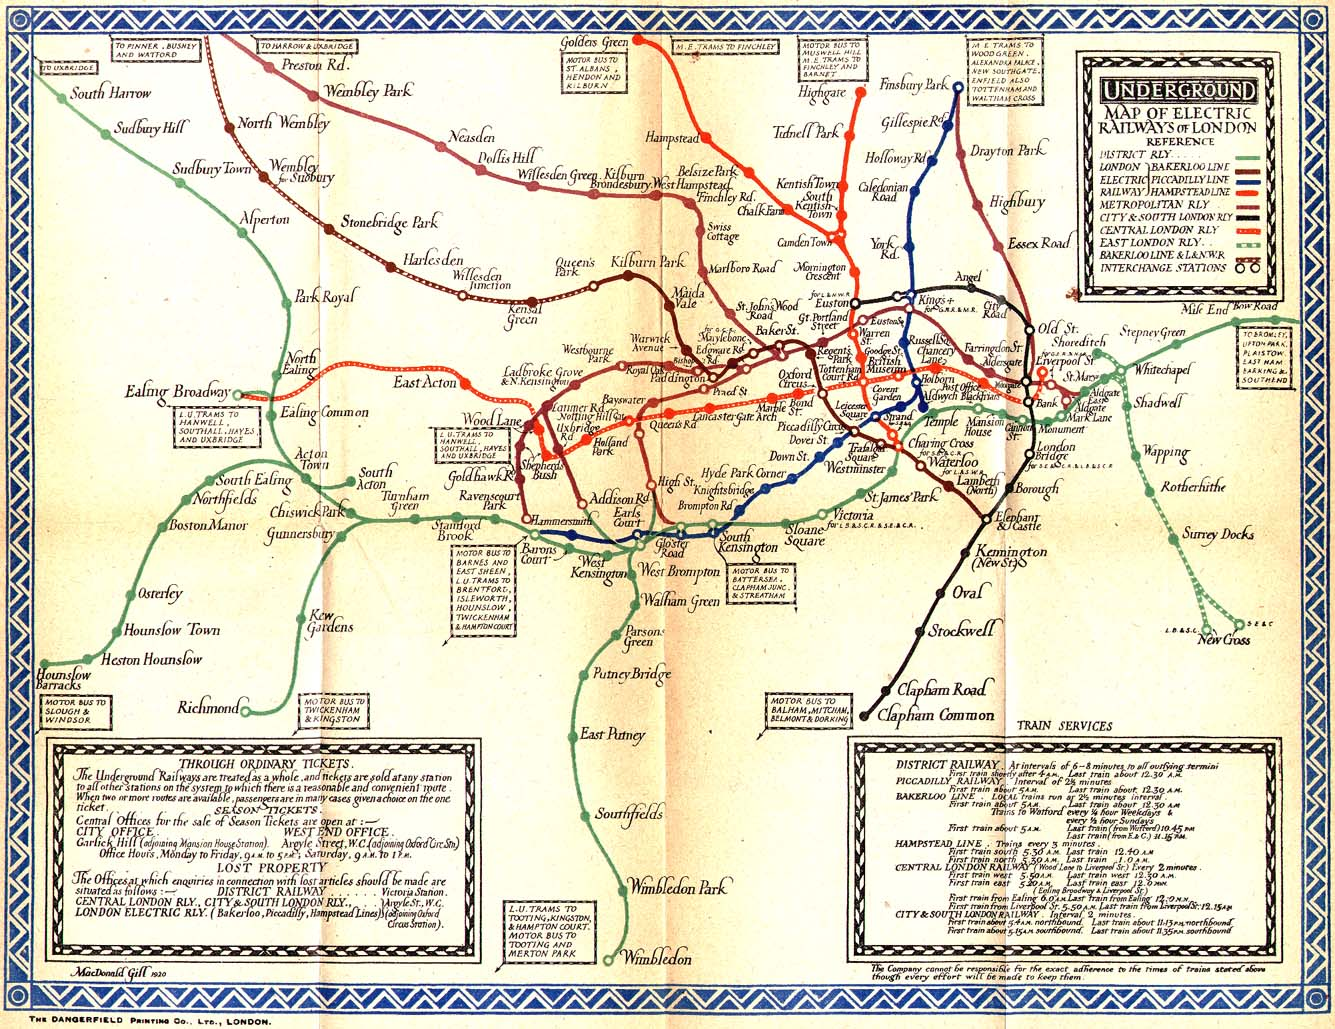 1921 London Subway Maps